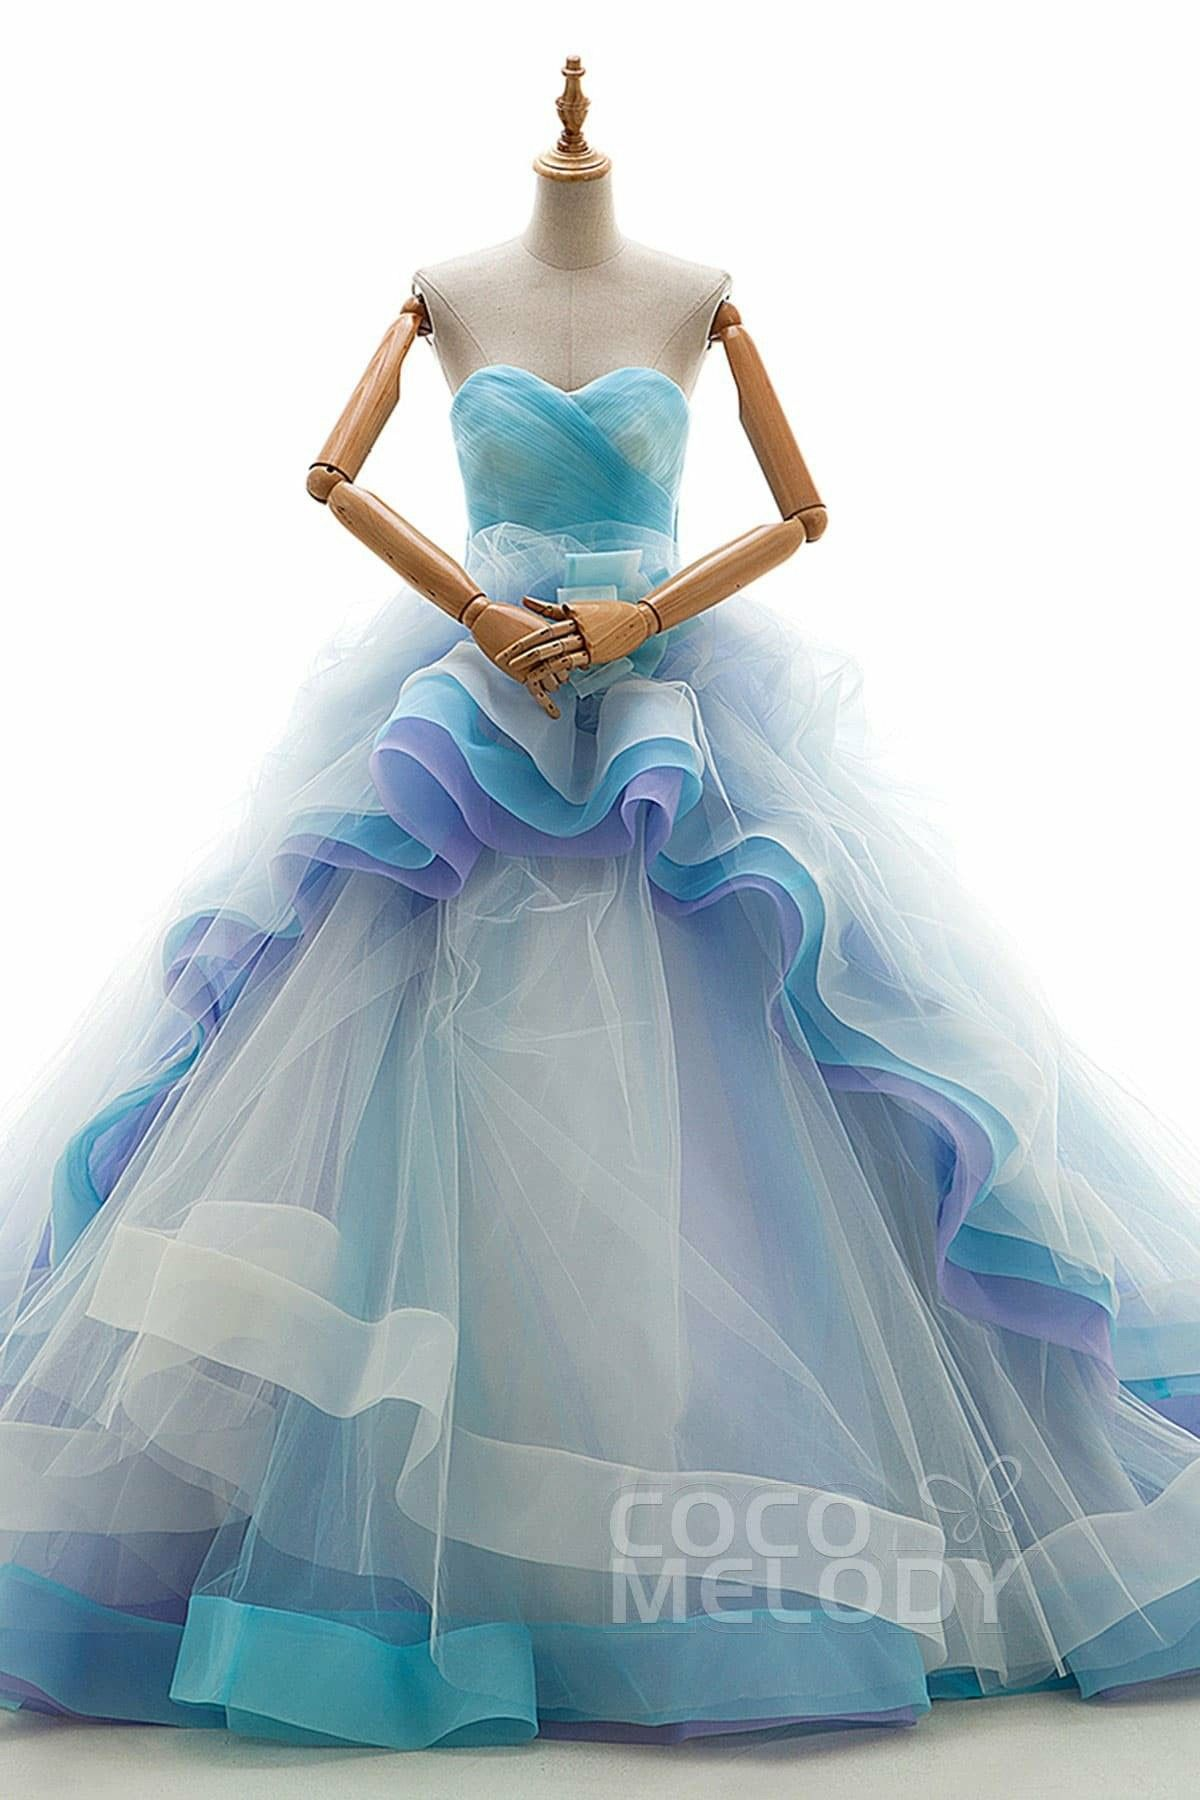 The best prom dress ever #aqua bkue love | prom theme | Pinterest ...